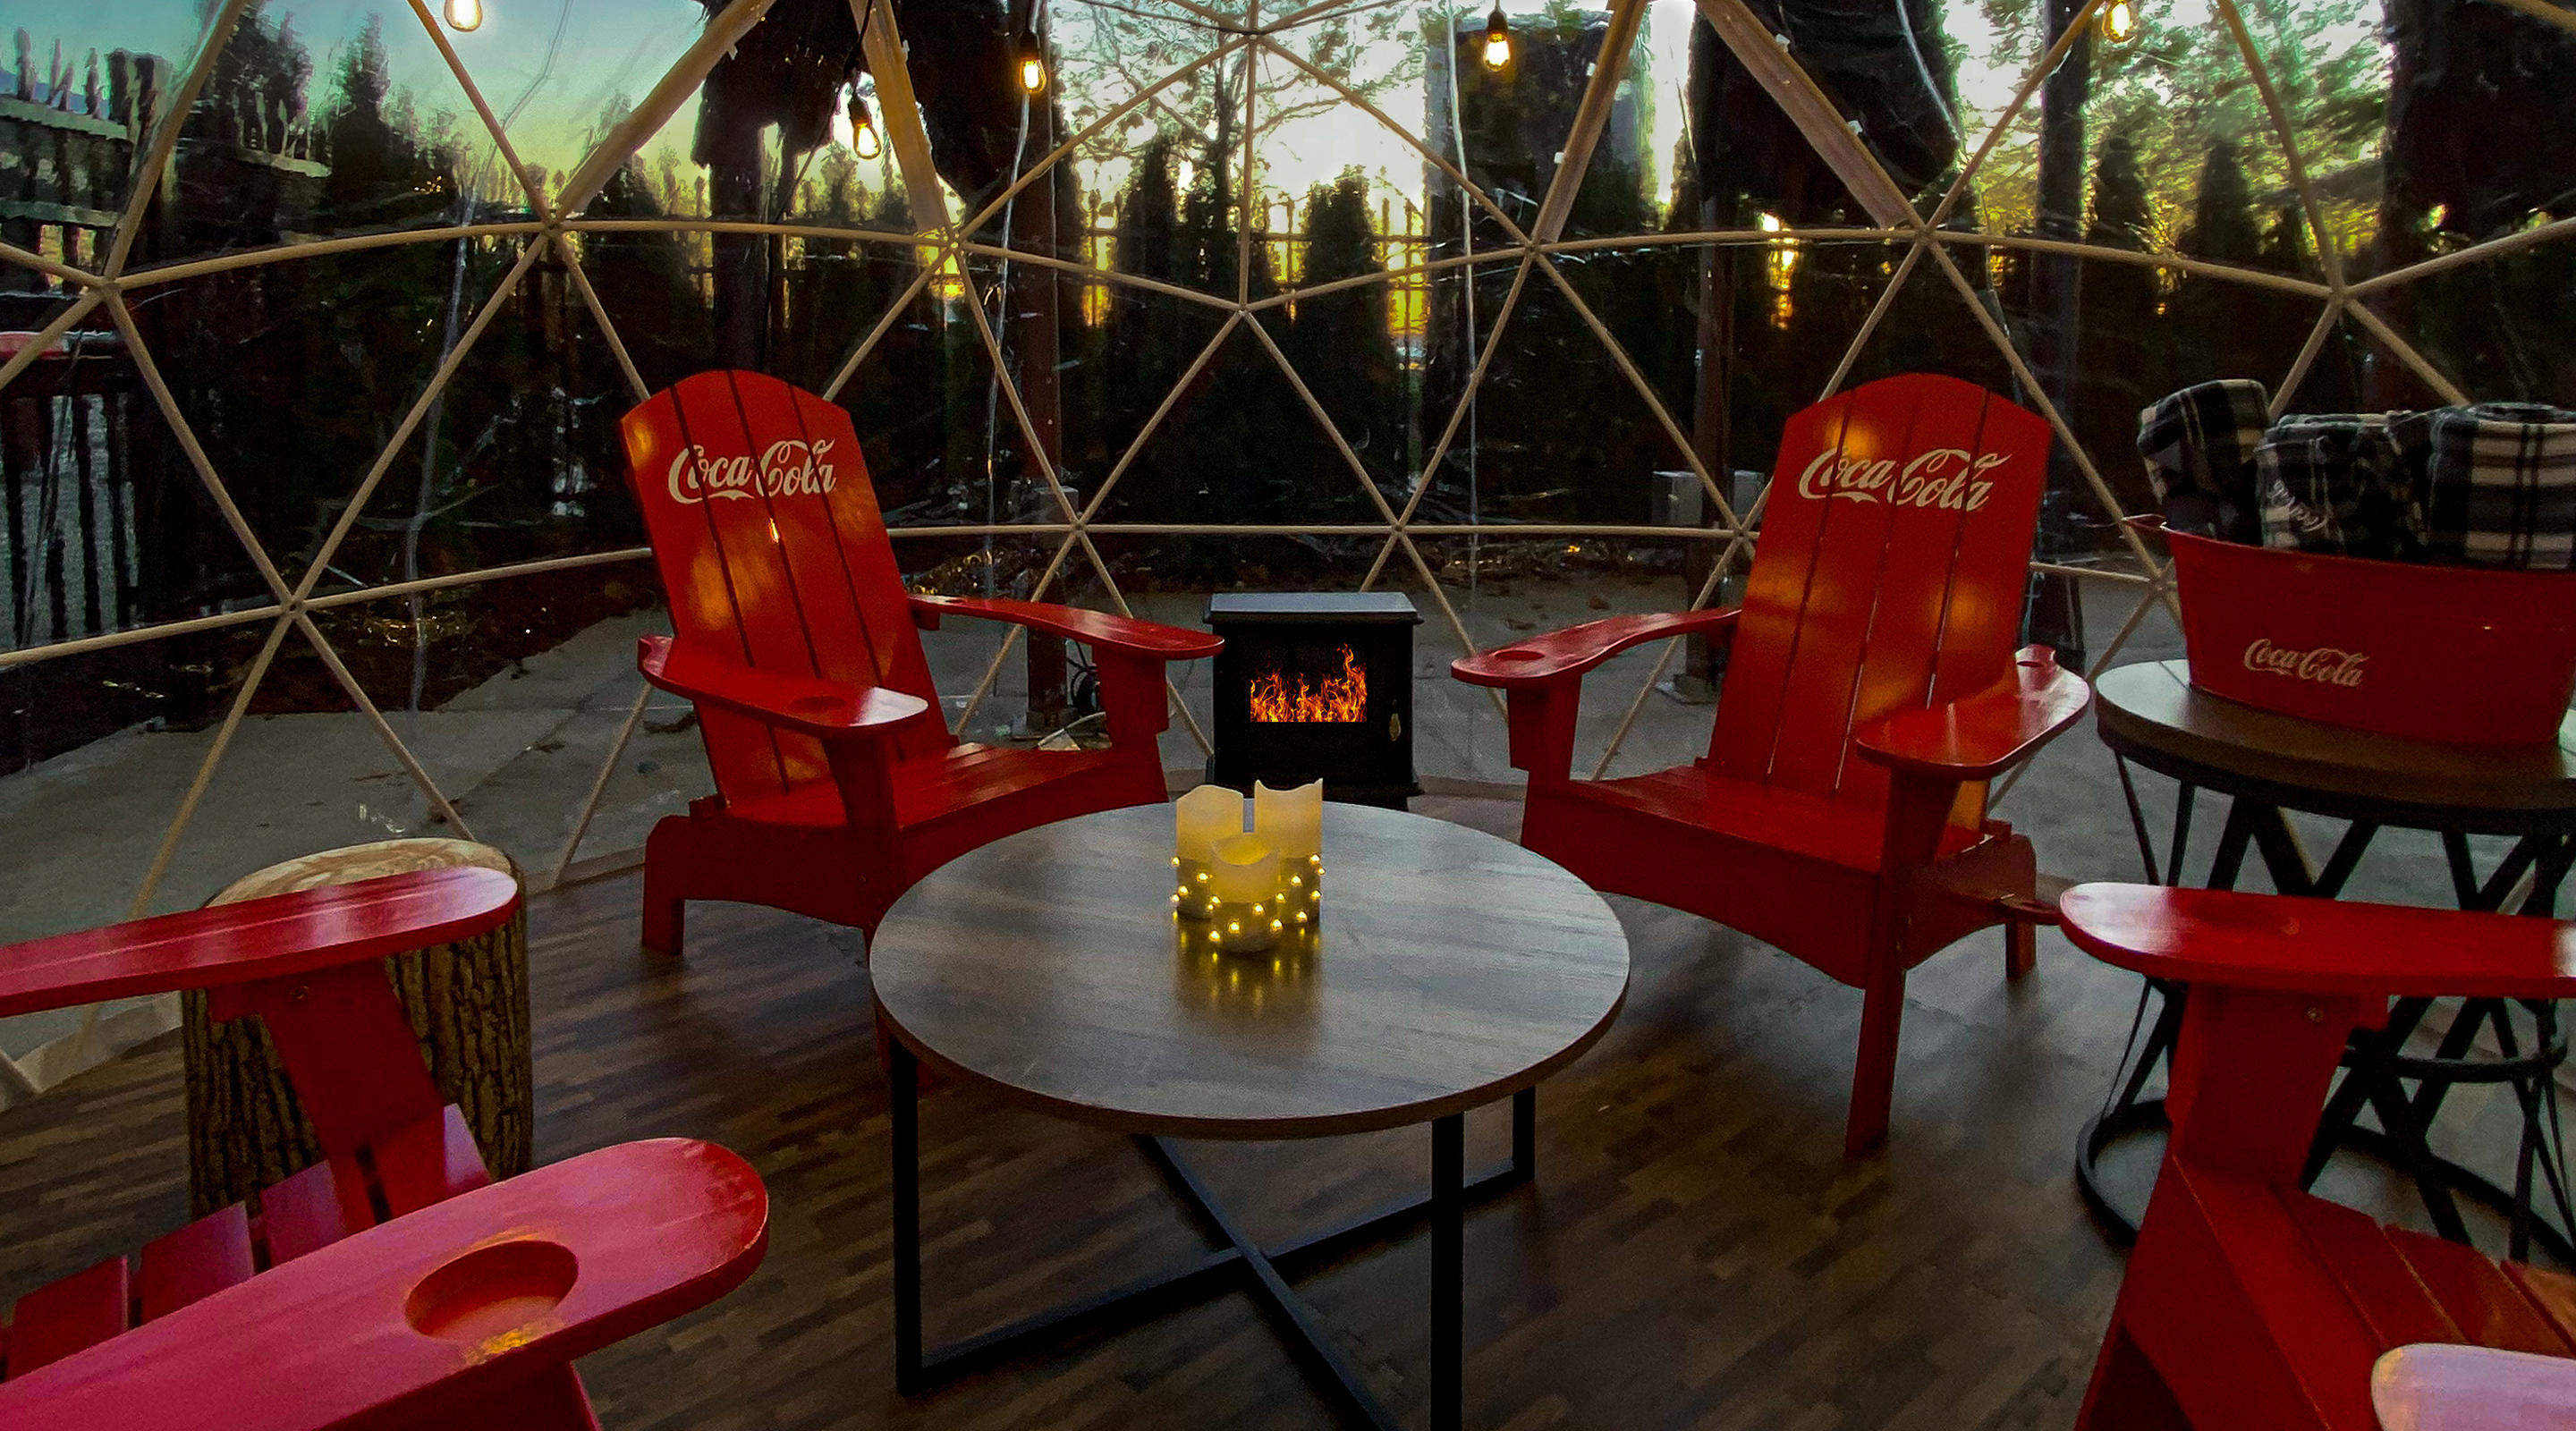 Dine outdoors in the COCA-COLA® snow globes at TAP.